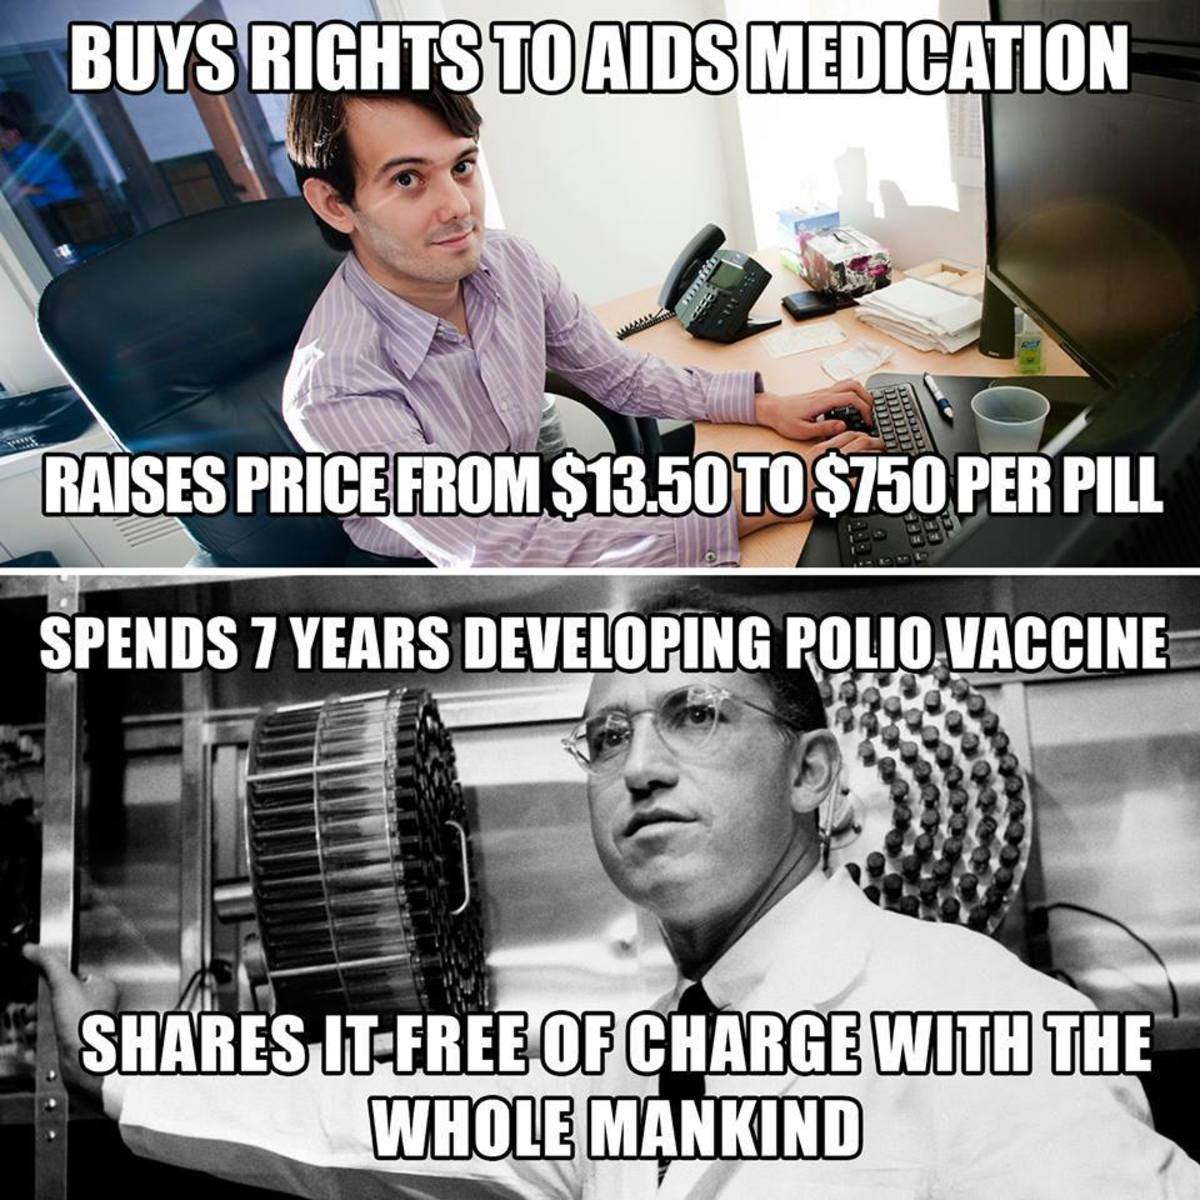 AIDs price hike vs Polio vaccine meme